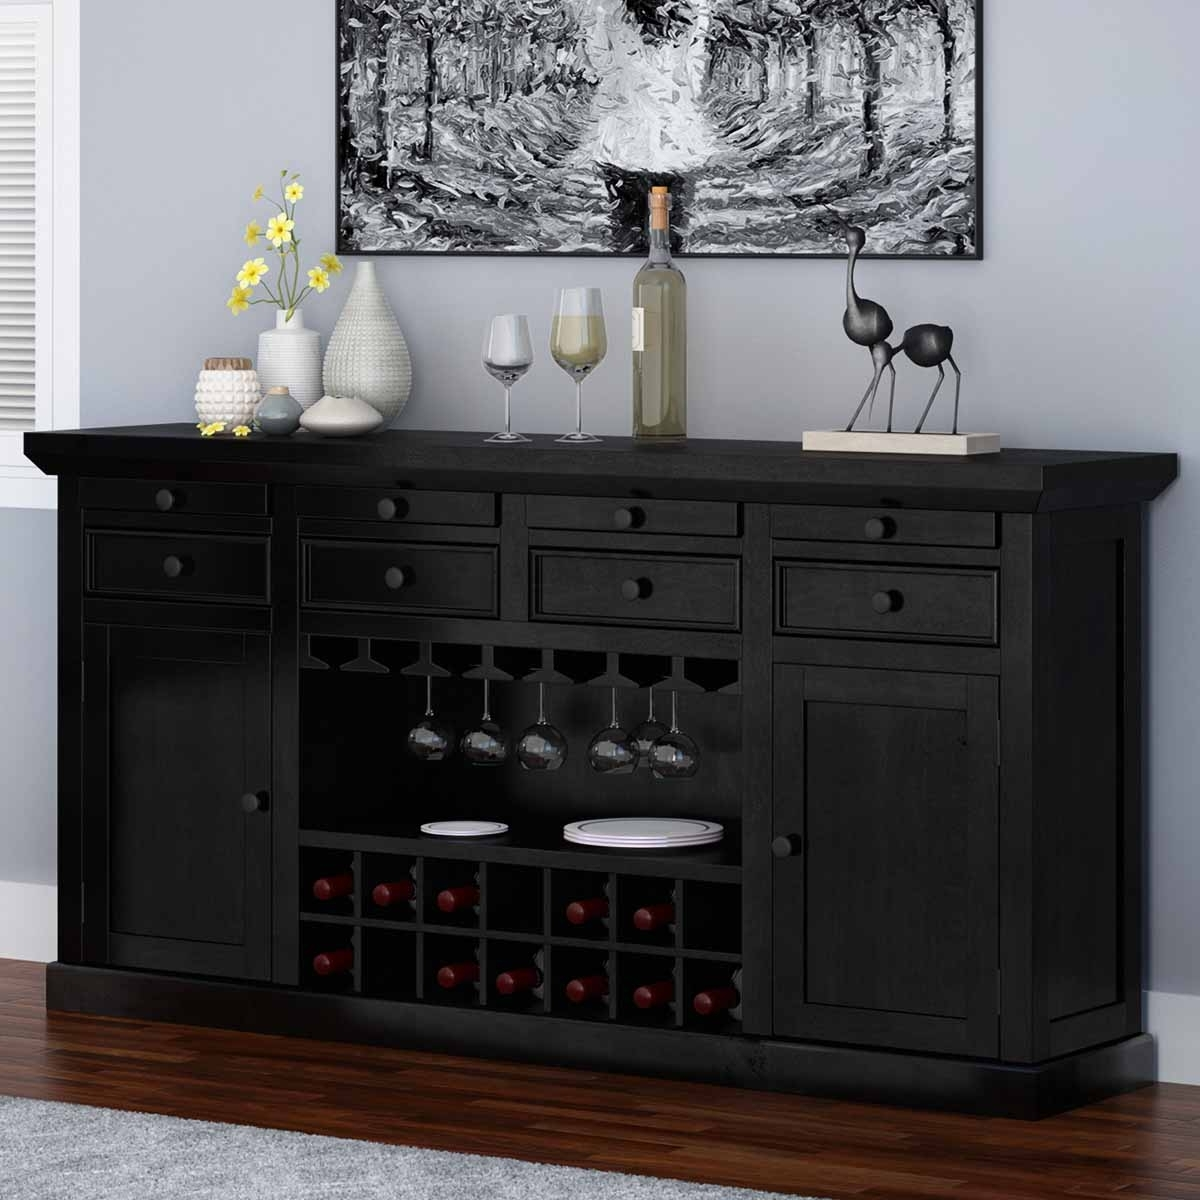 Buffets & Sideboards | Sierra Living Concepts Throughout Iron Sideboards (View 8 of 30)